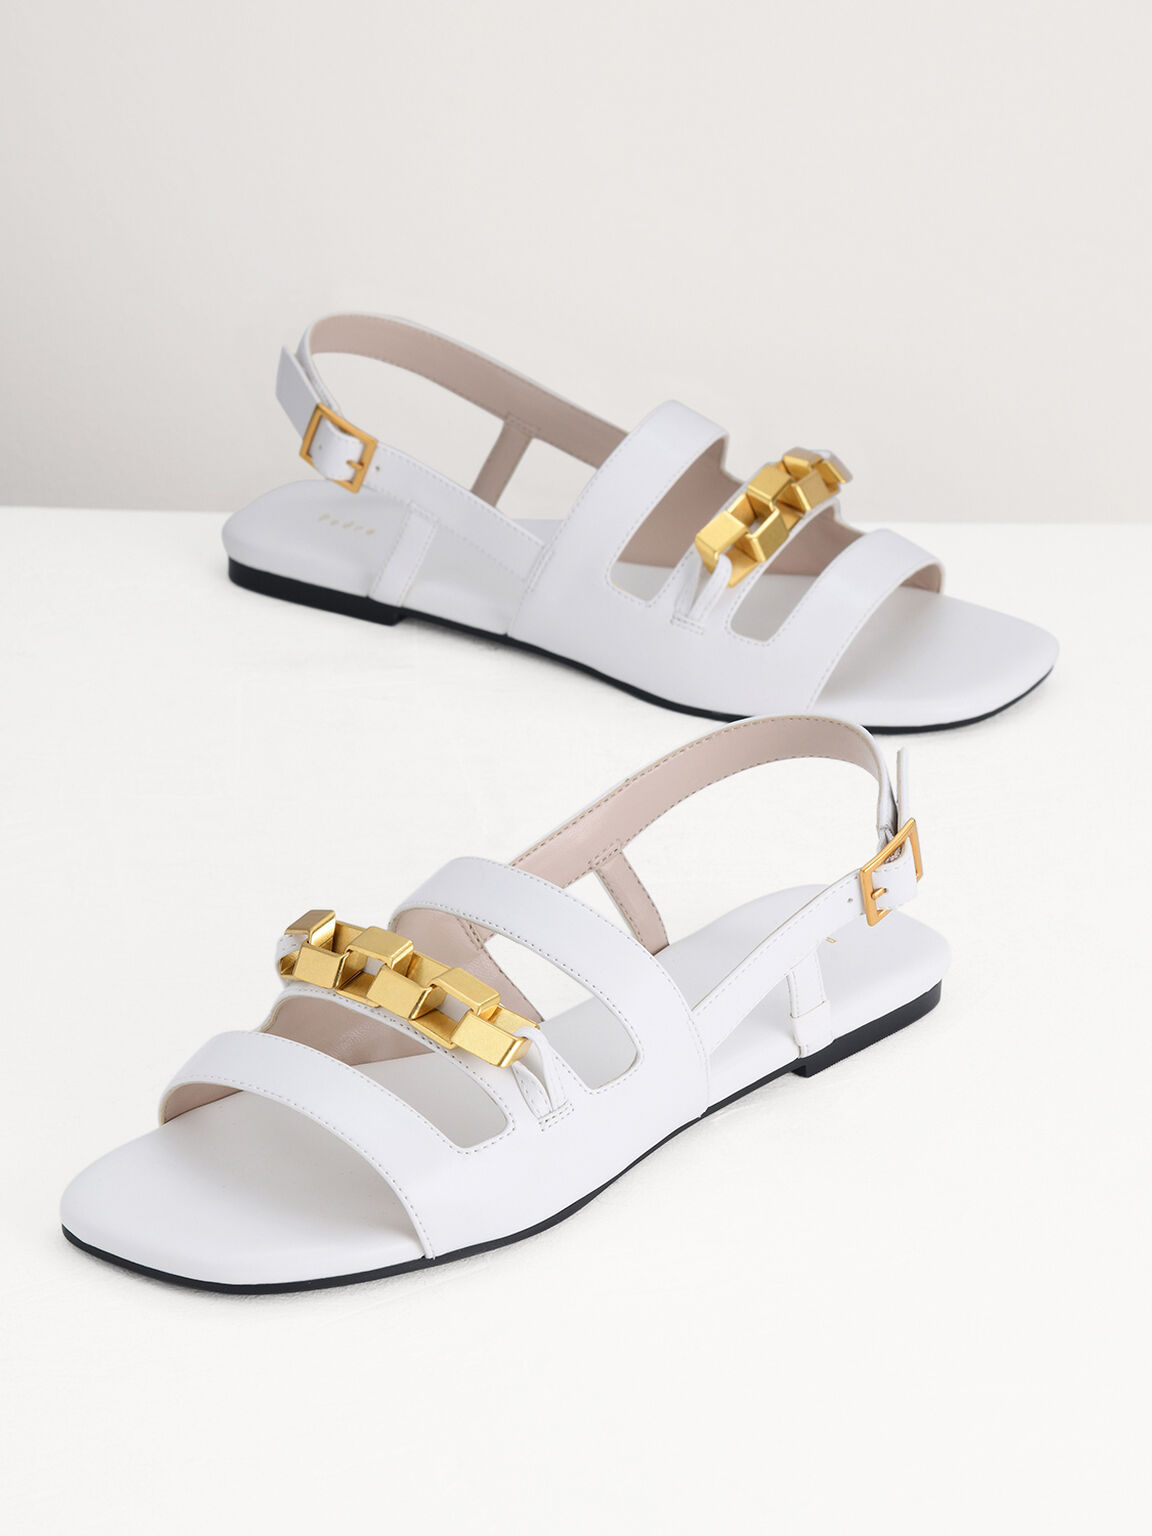 Gold Embellished Slingback Sandals, White, hi-res